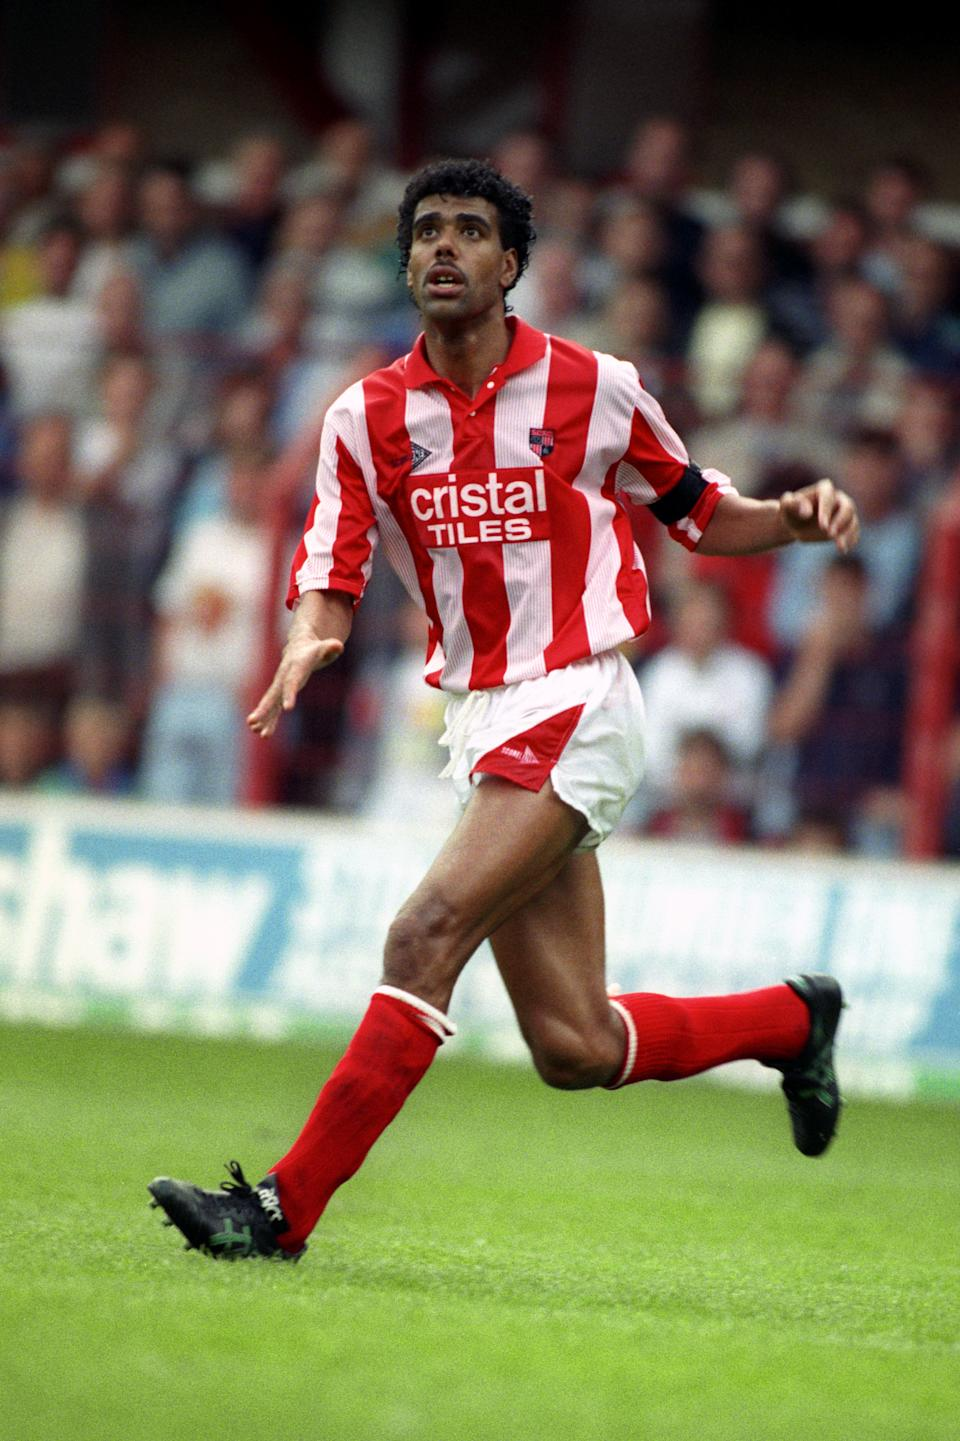 Chris Kamara, Stoke City  (Photo by Neal Simpson/EMPICS via Getty Images)